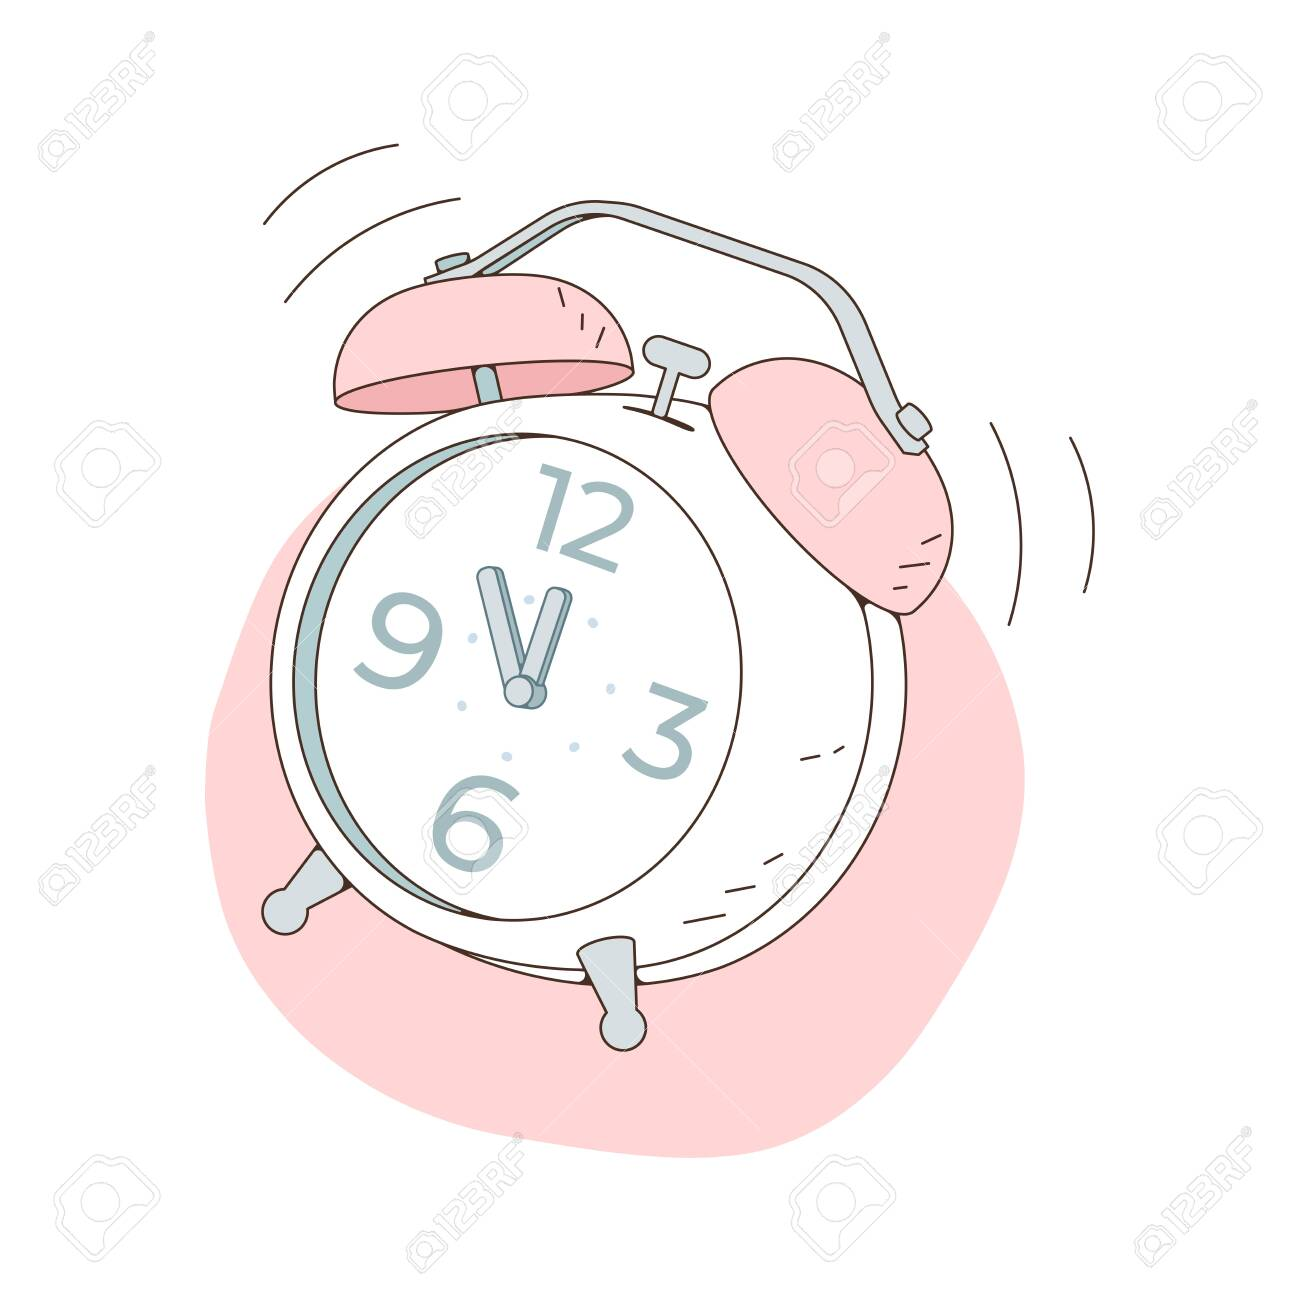 The alarm clock is ringing at noon. Vector illustration isolated on white background - 153189256